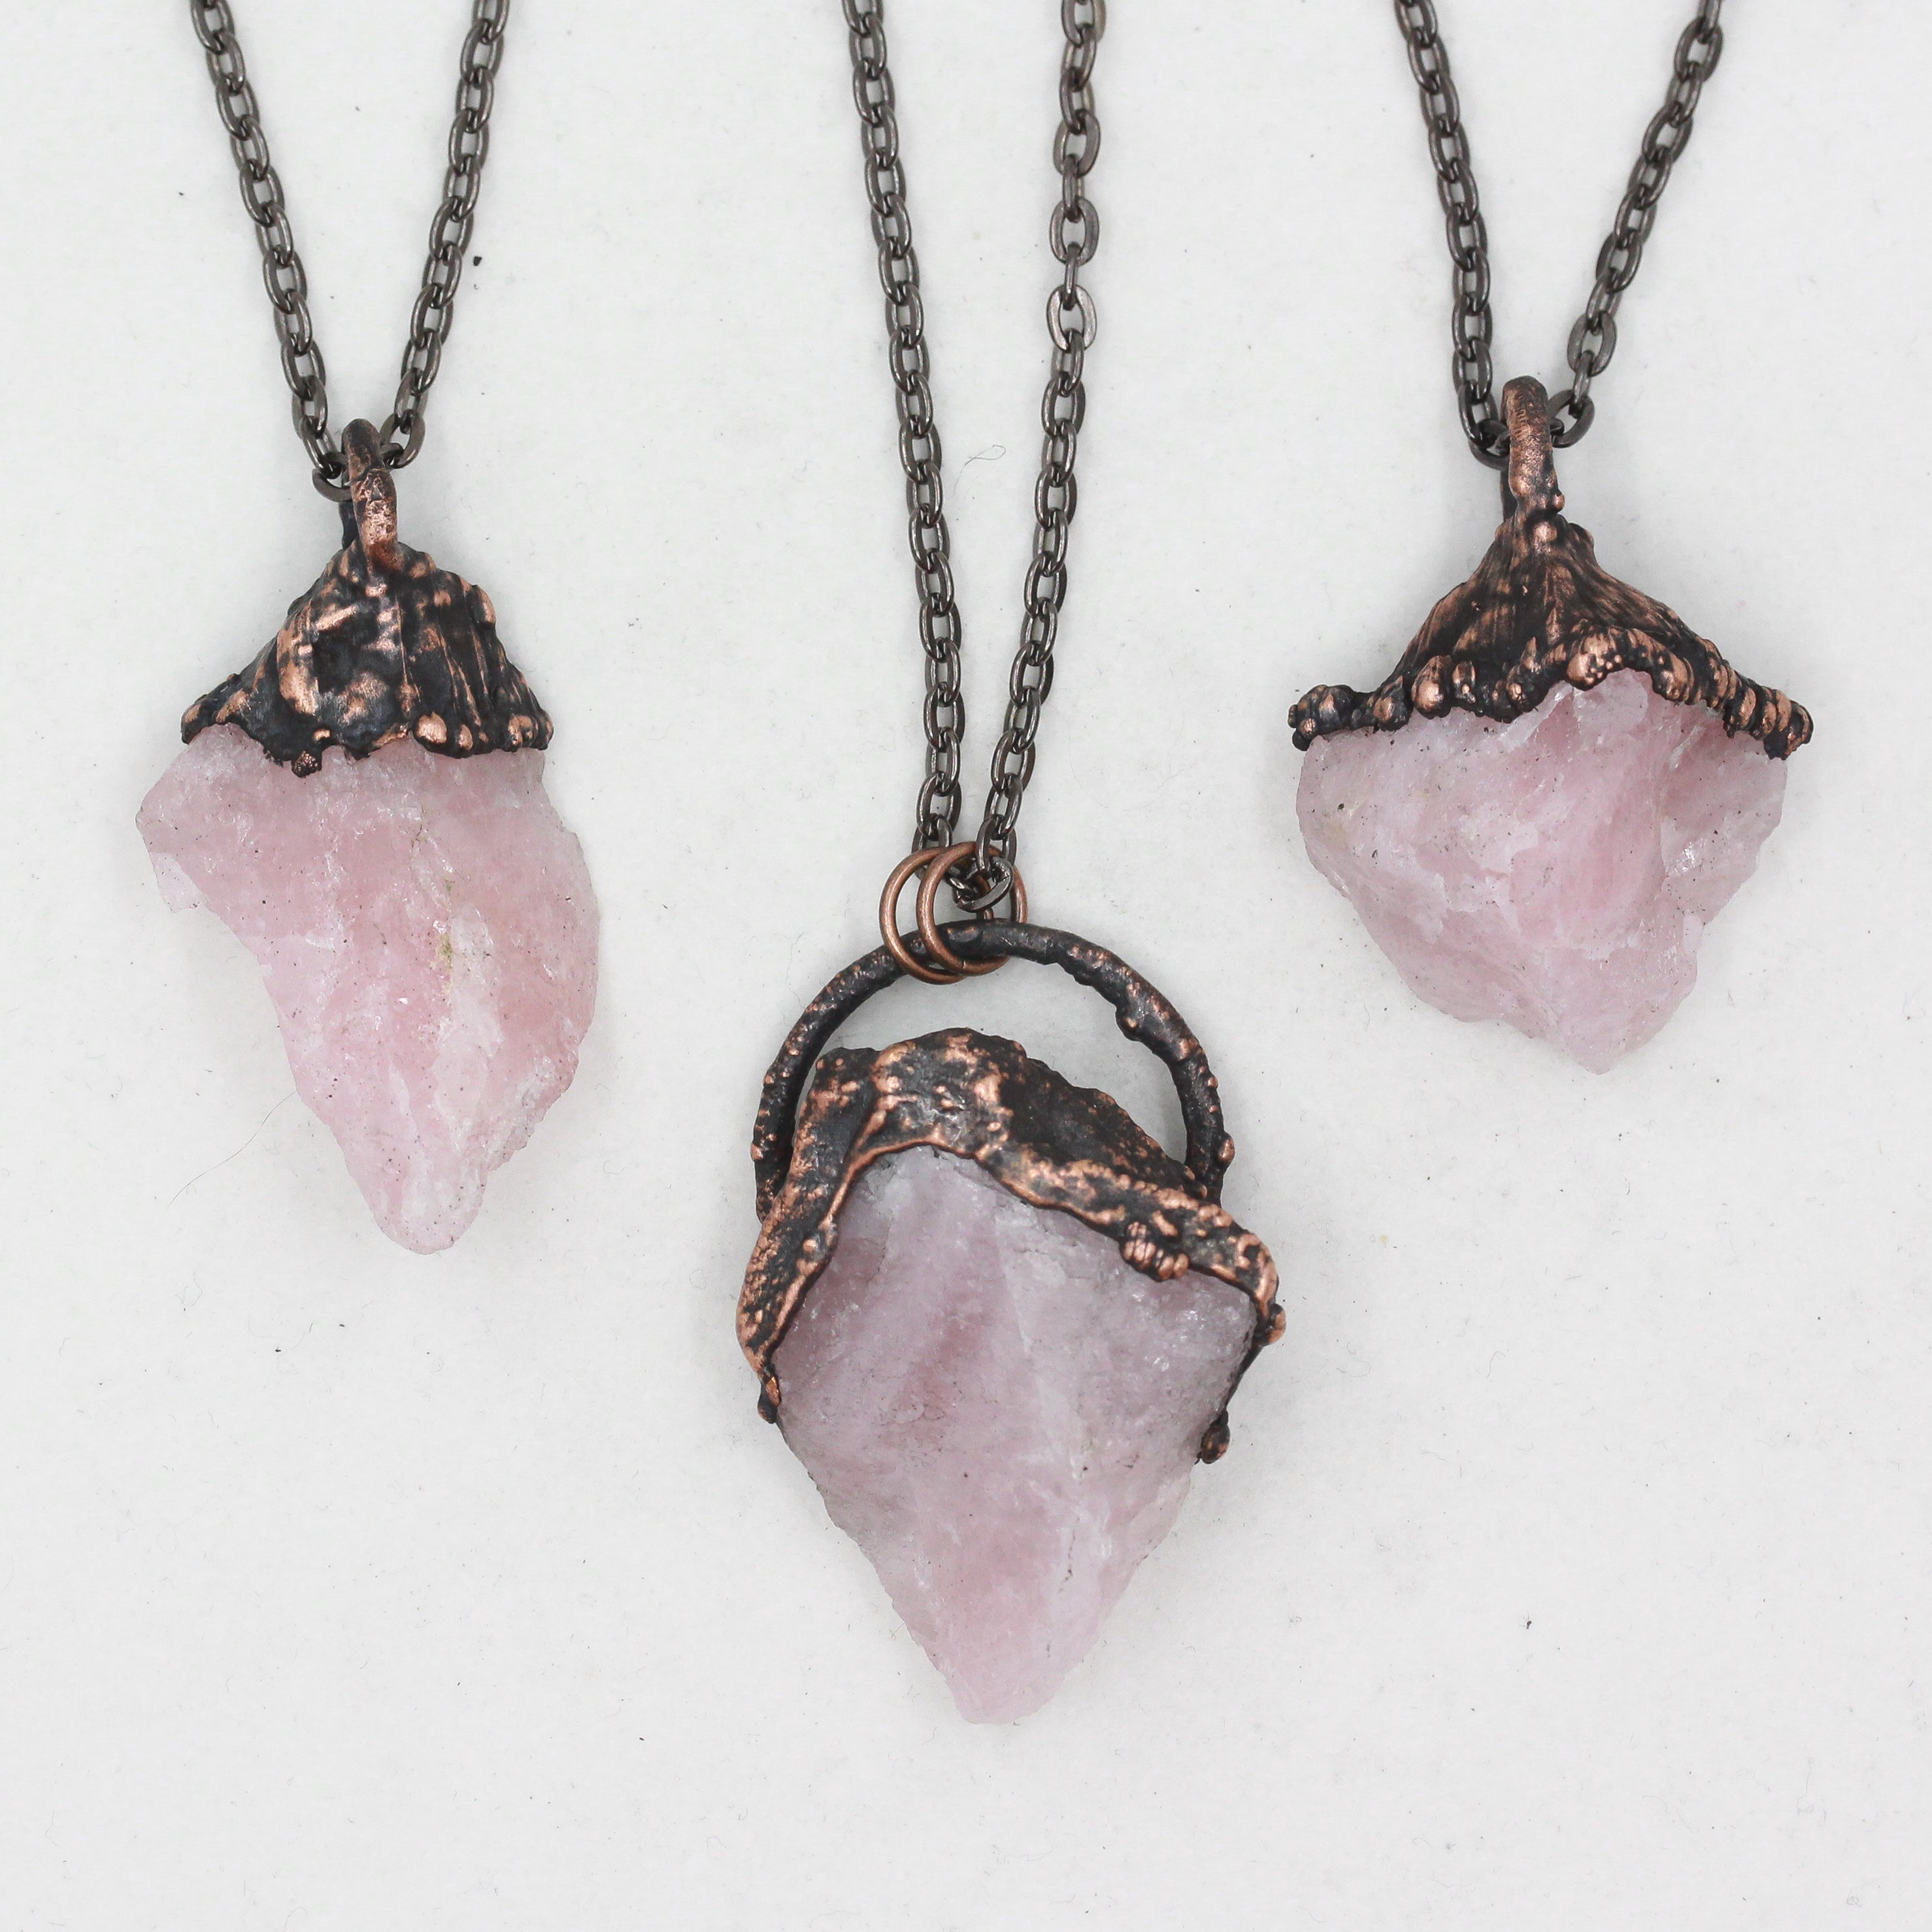 Copper Electroformed Raw Rose Quartz Crystal Necklace